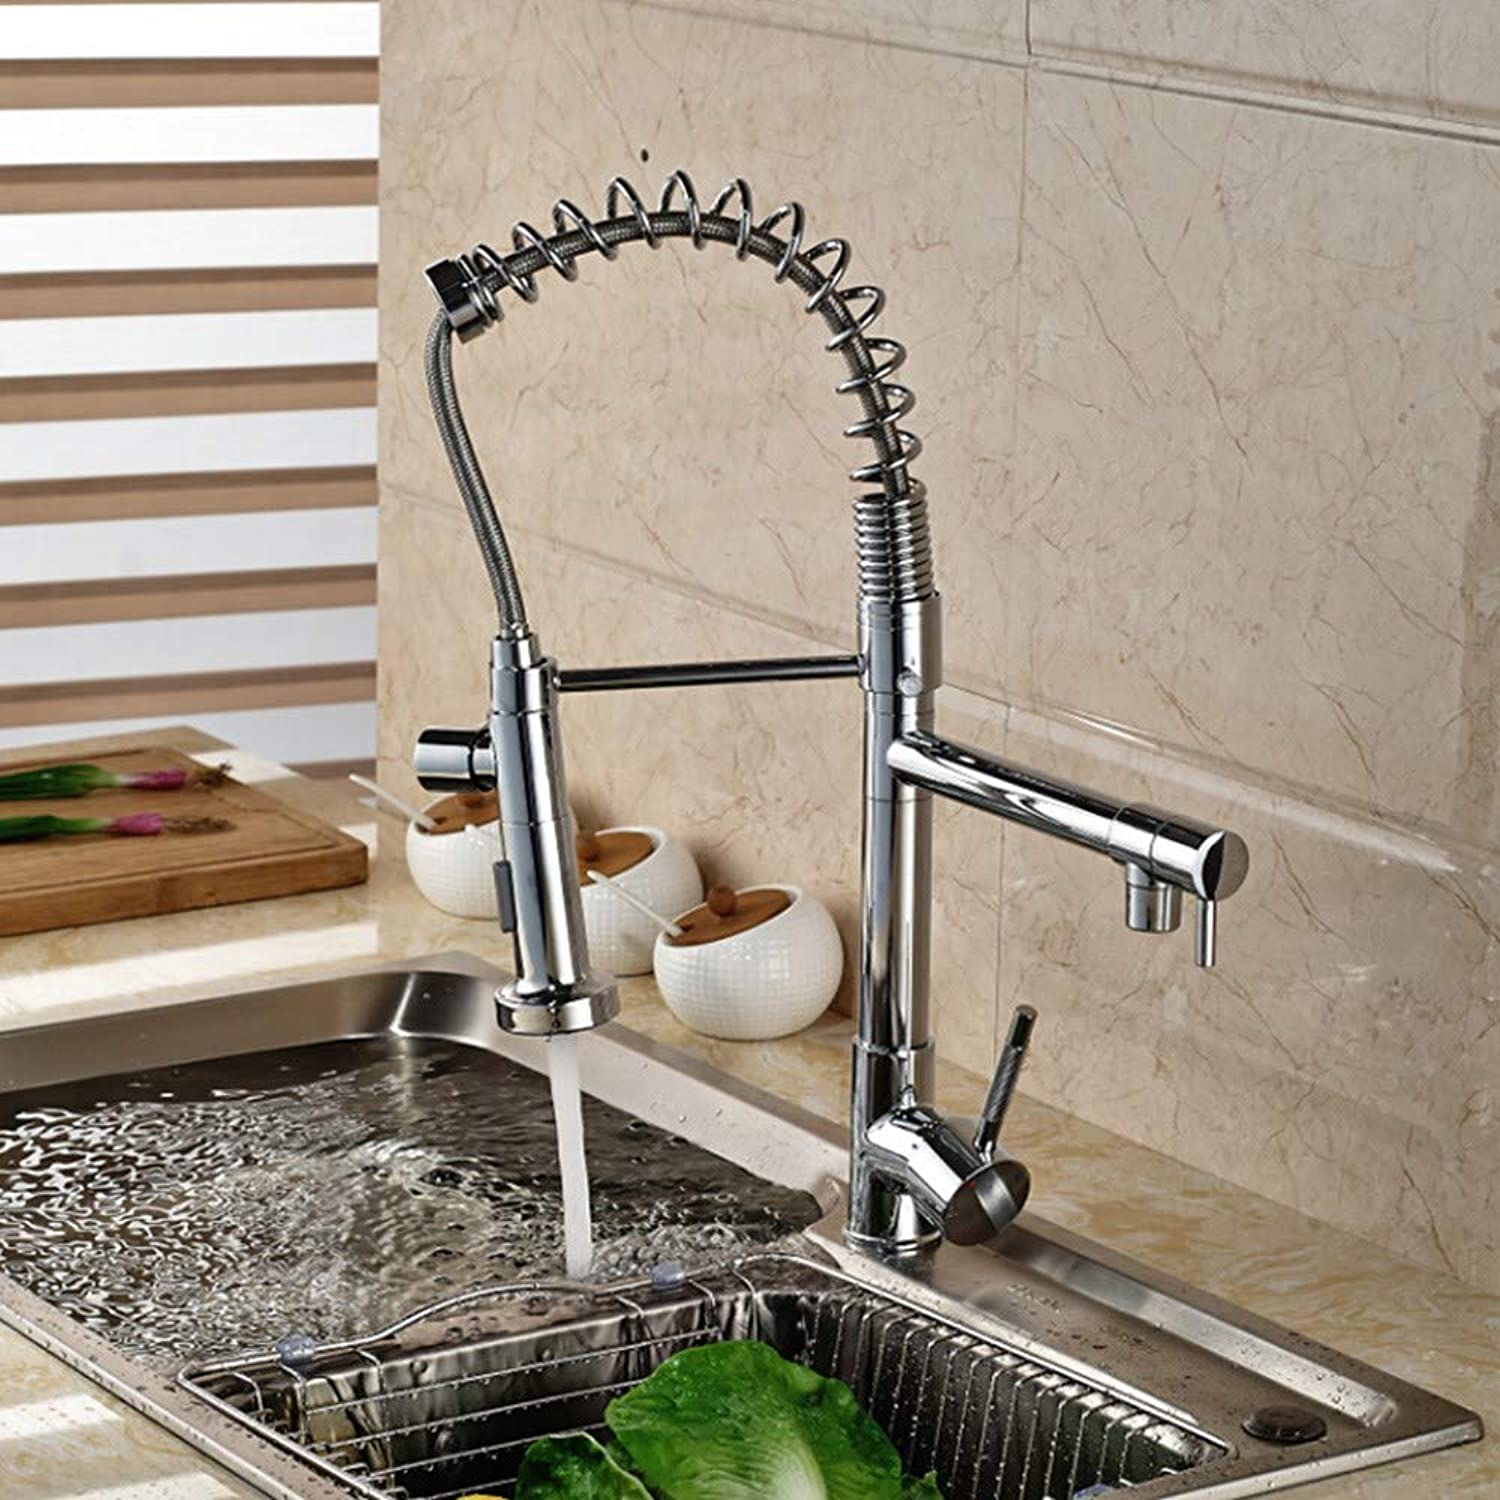 DOVPW Bathroom Faucet Chrome Basin Kitchen Faucet Pull Out Dual Spouts Spring Brass Kitchen Faucet Hot And Cold Mixer Tap Deck Mounted